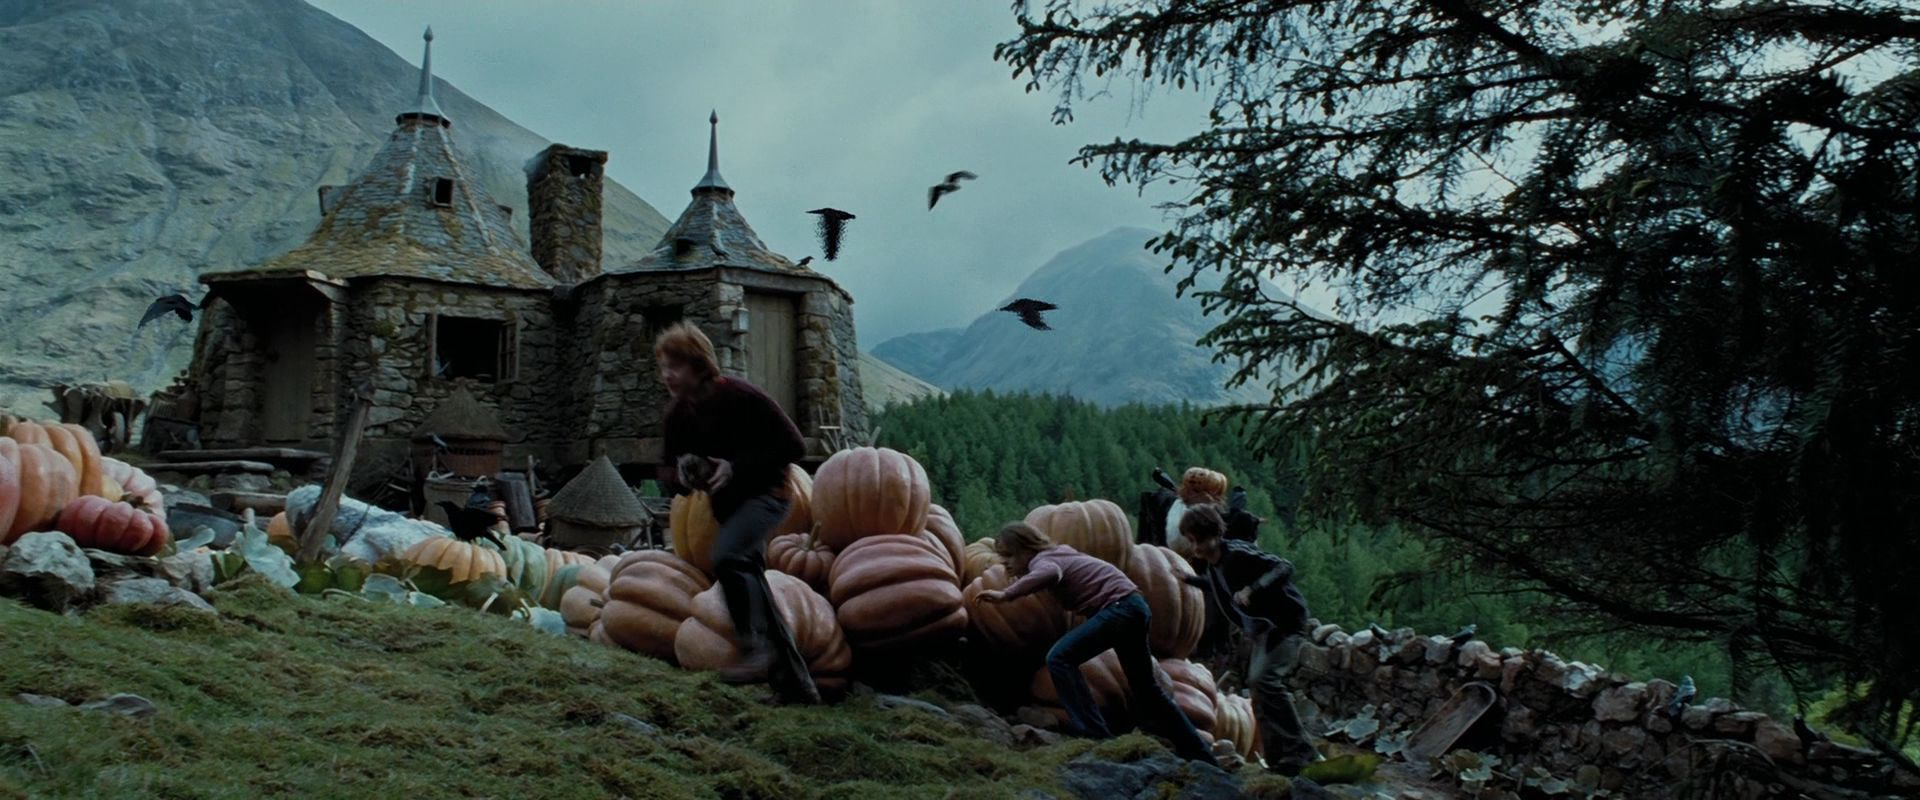 Week with a Wizard, Day 3: Harry Potter and the Prisoner of Azkaban